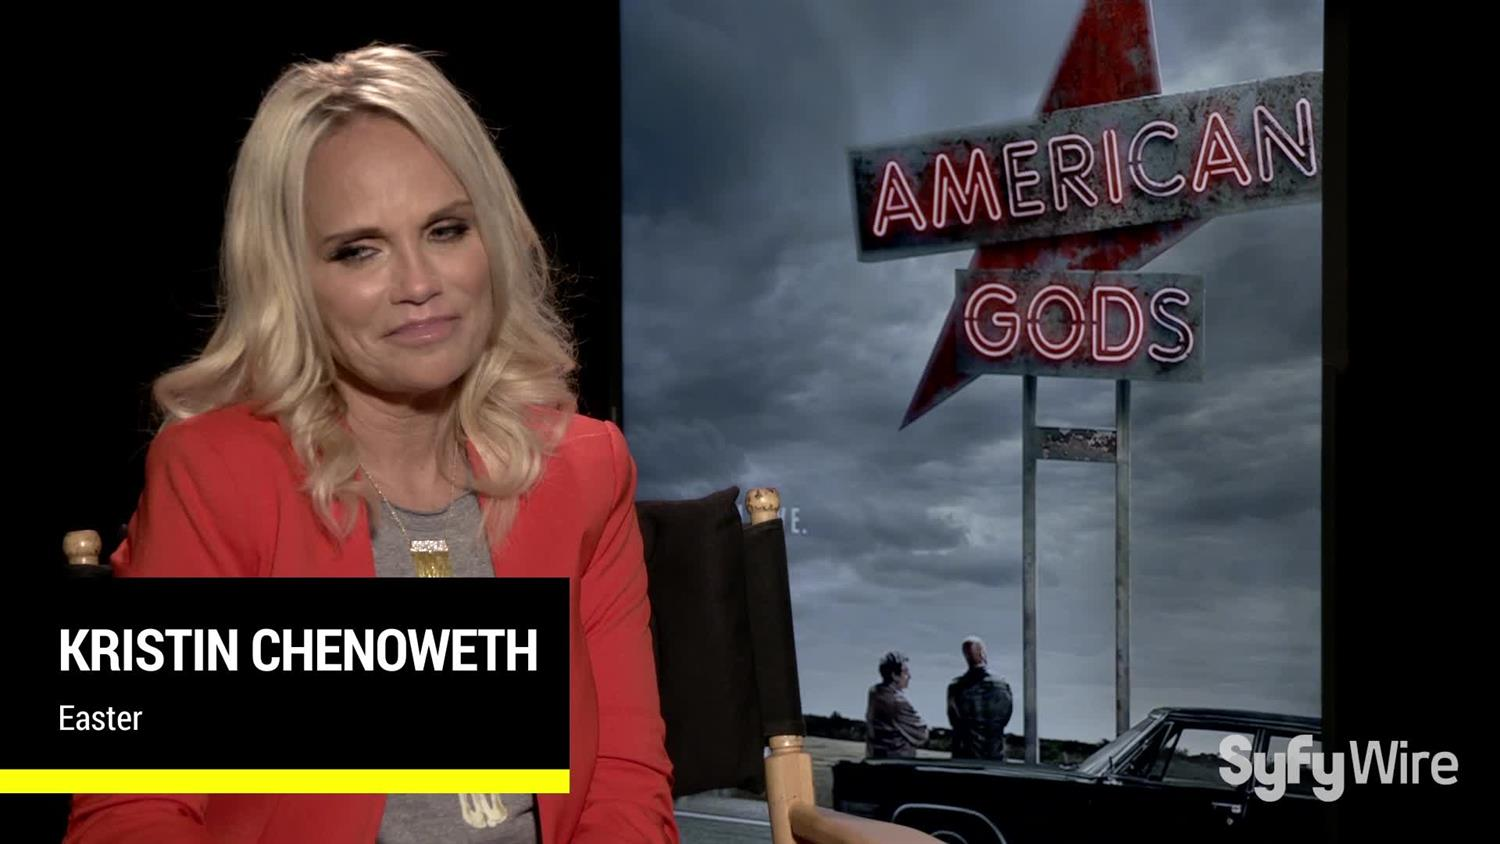 American Gods' Kristin Chenoweth on Reuniting with Bryan Fuller